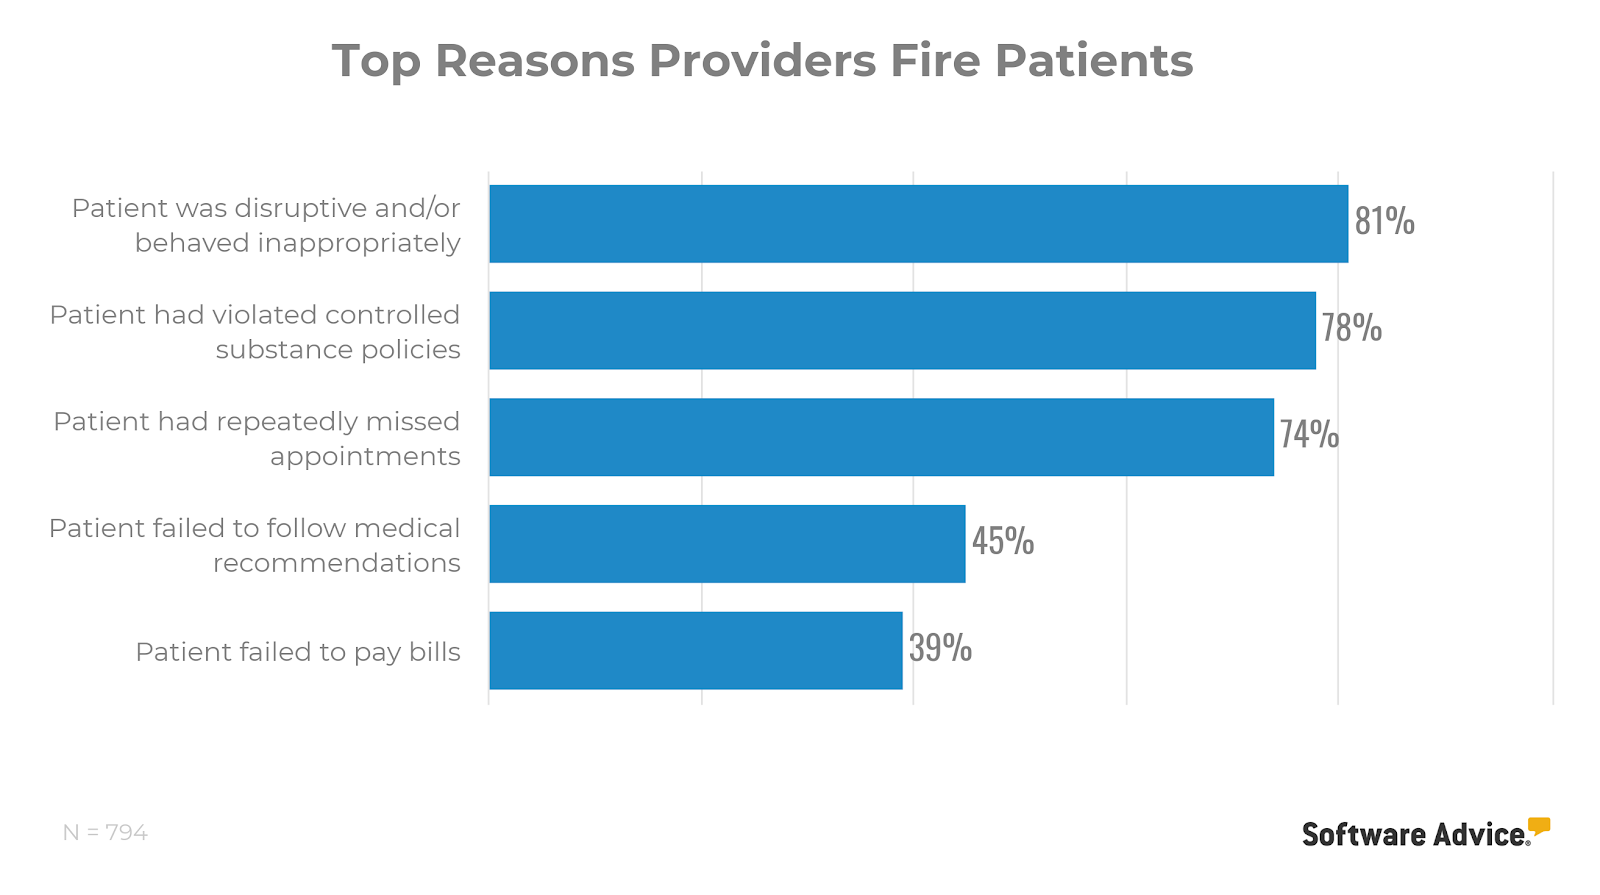 Top reasons medical providers have dismissed patients